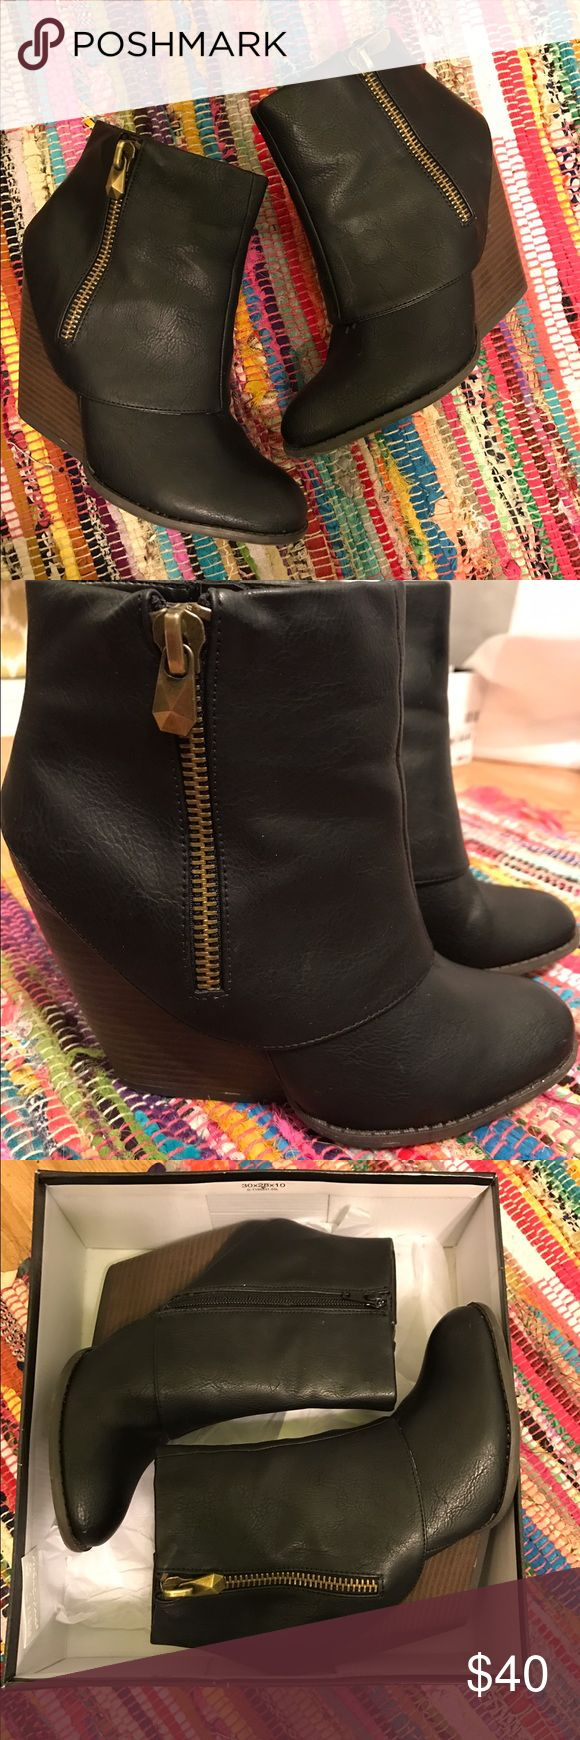 Wedge ankle boots Black wedged ankle boots with a wooden heel. Super cute and comfortable! Worn once Fergalicious Shoes Ankle Boots & Booties